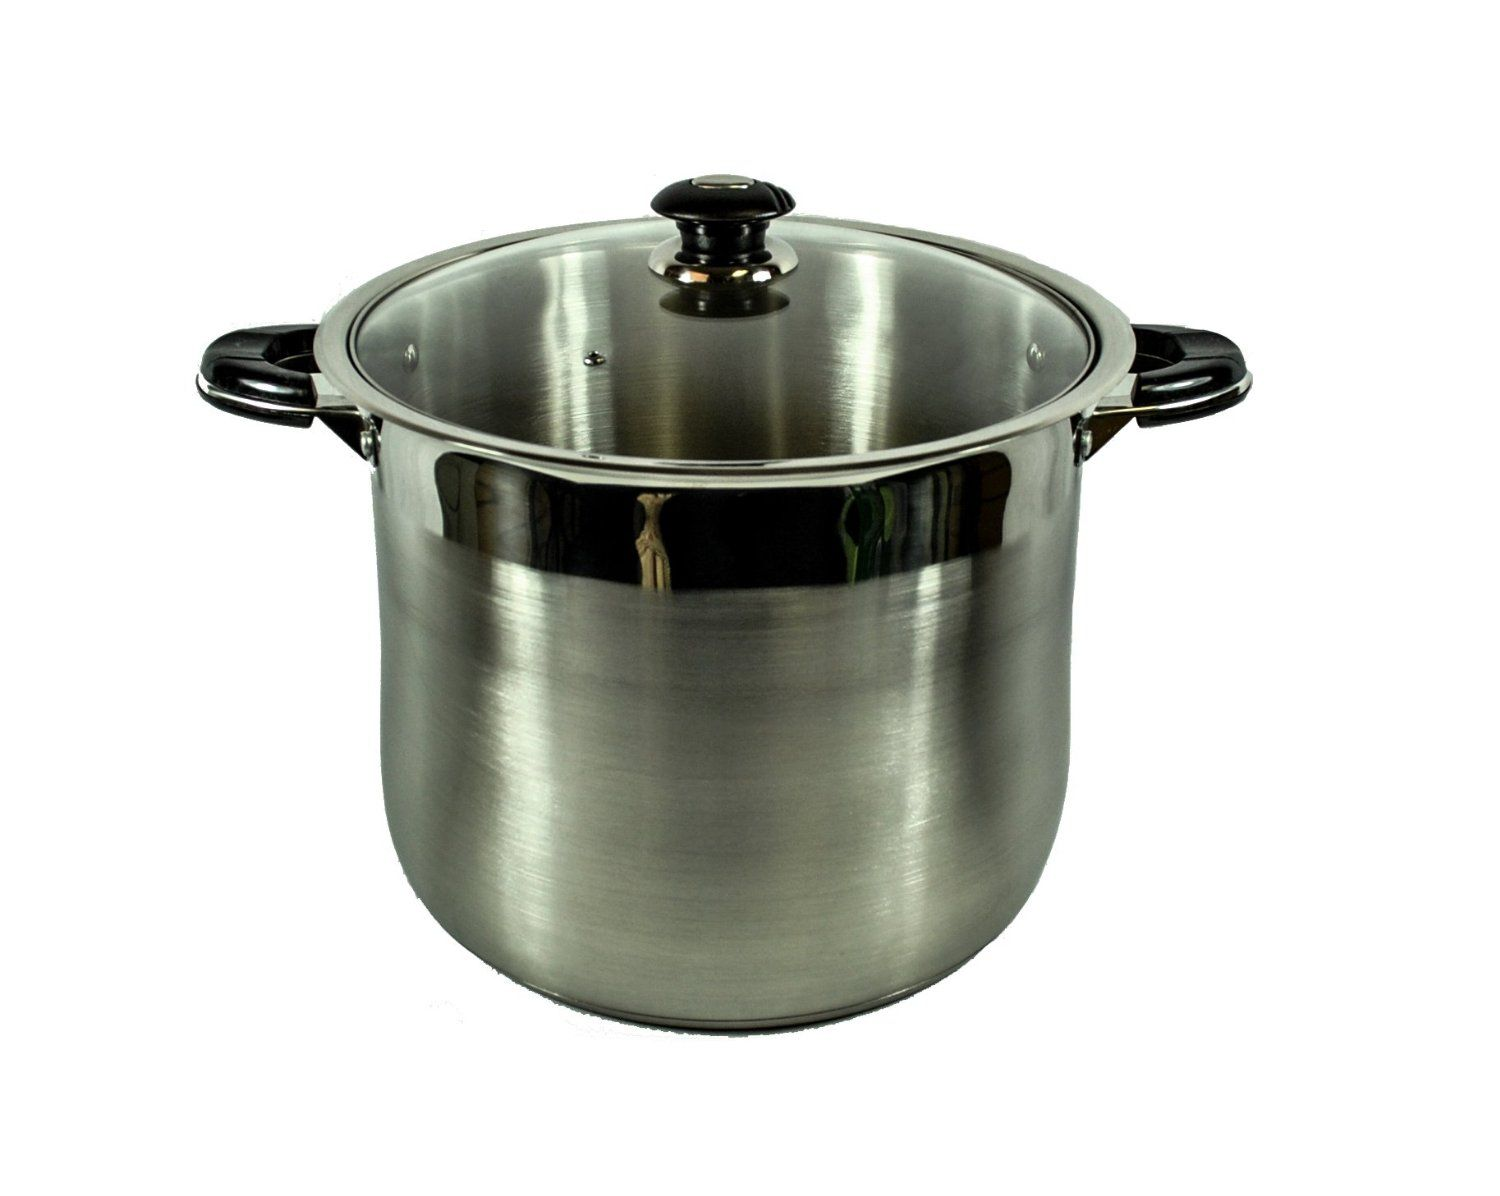 Alpha 5512 stainless steel stock pot with